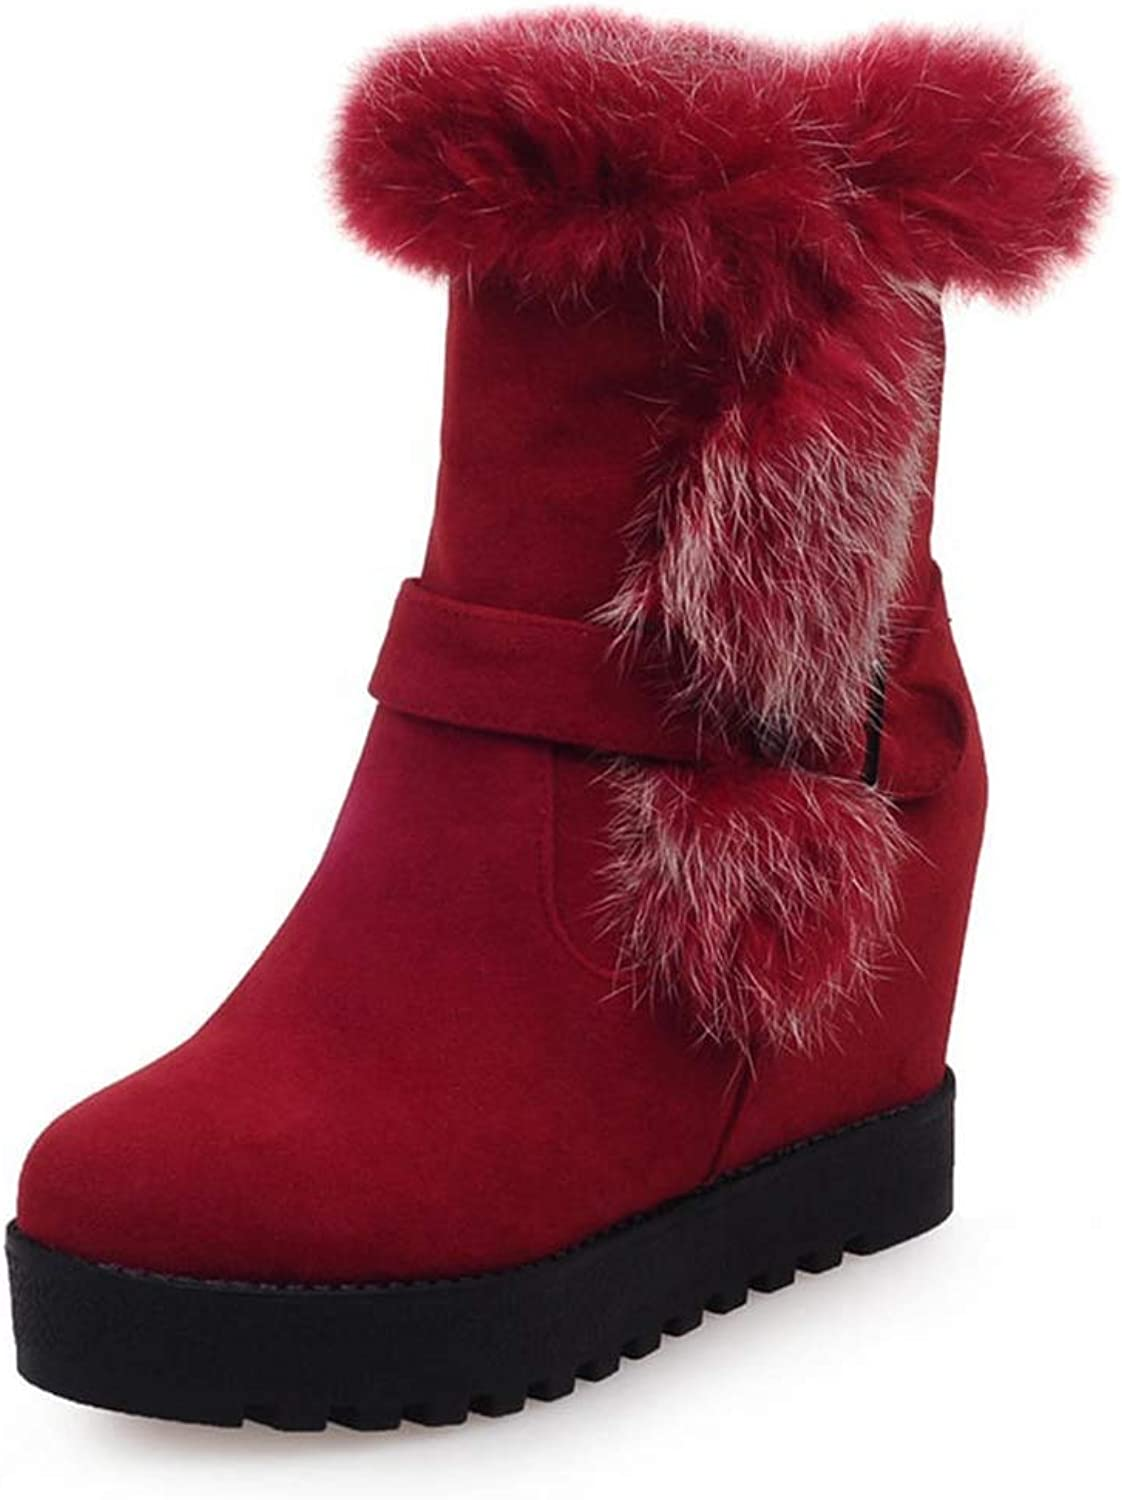 Slip On Warm shoes for Woman Add Fur Mid Calf Boots Winter Outdoor Wedge Heels